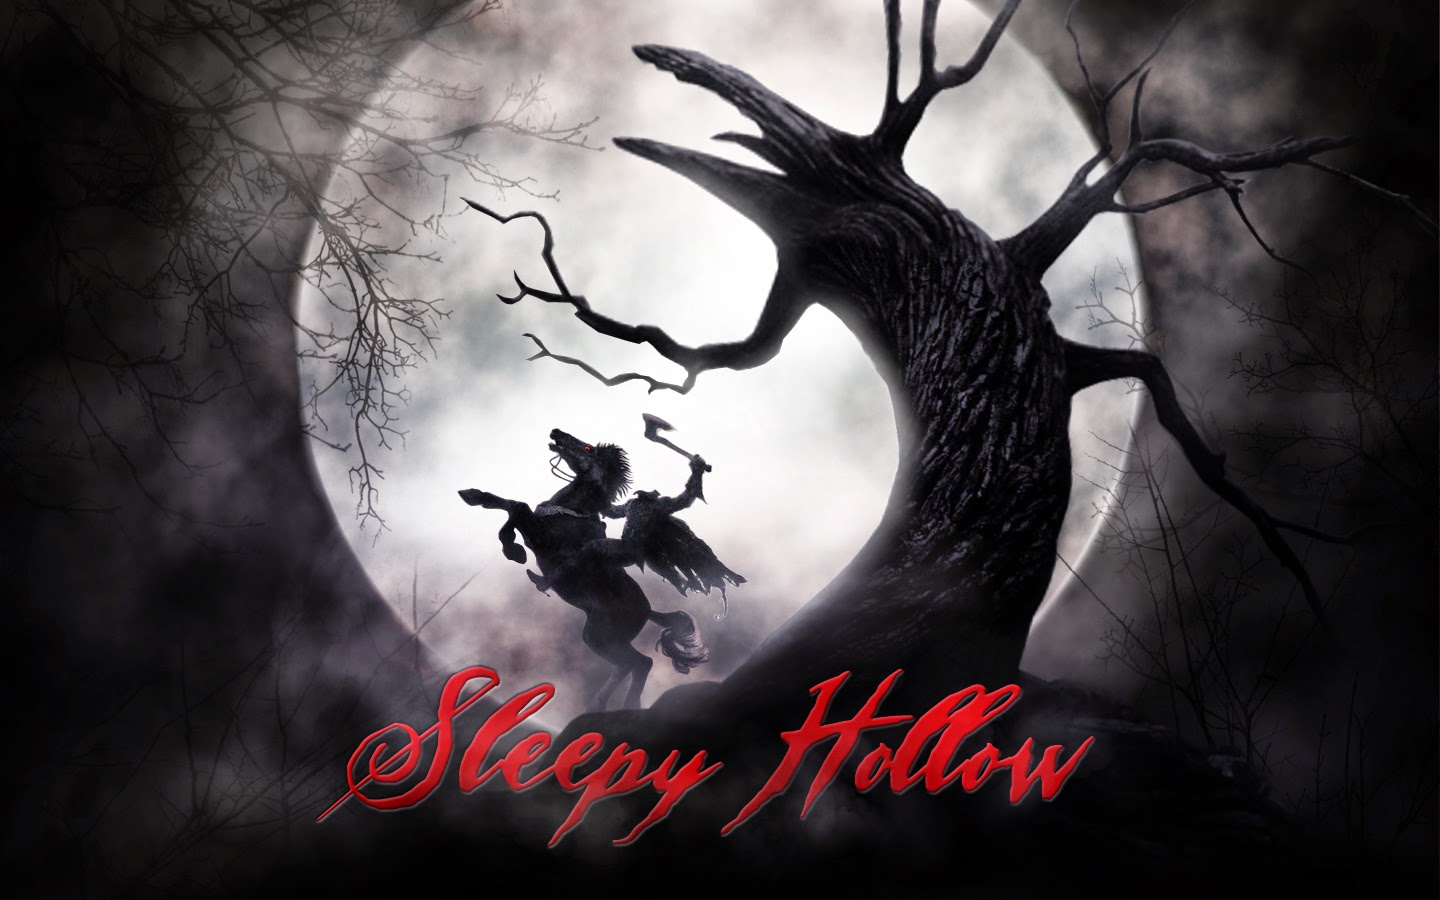 legend of sleepy hollow essay questions